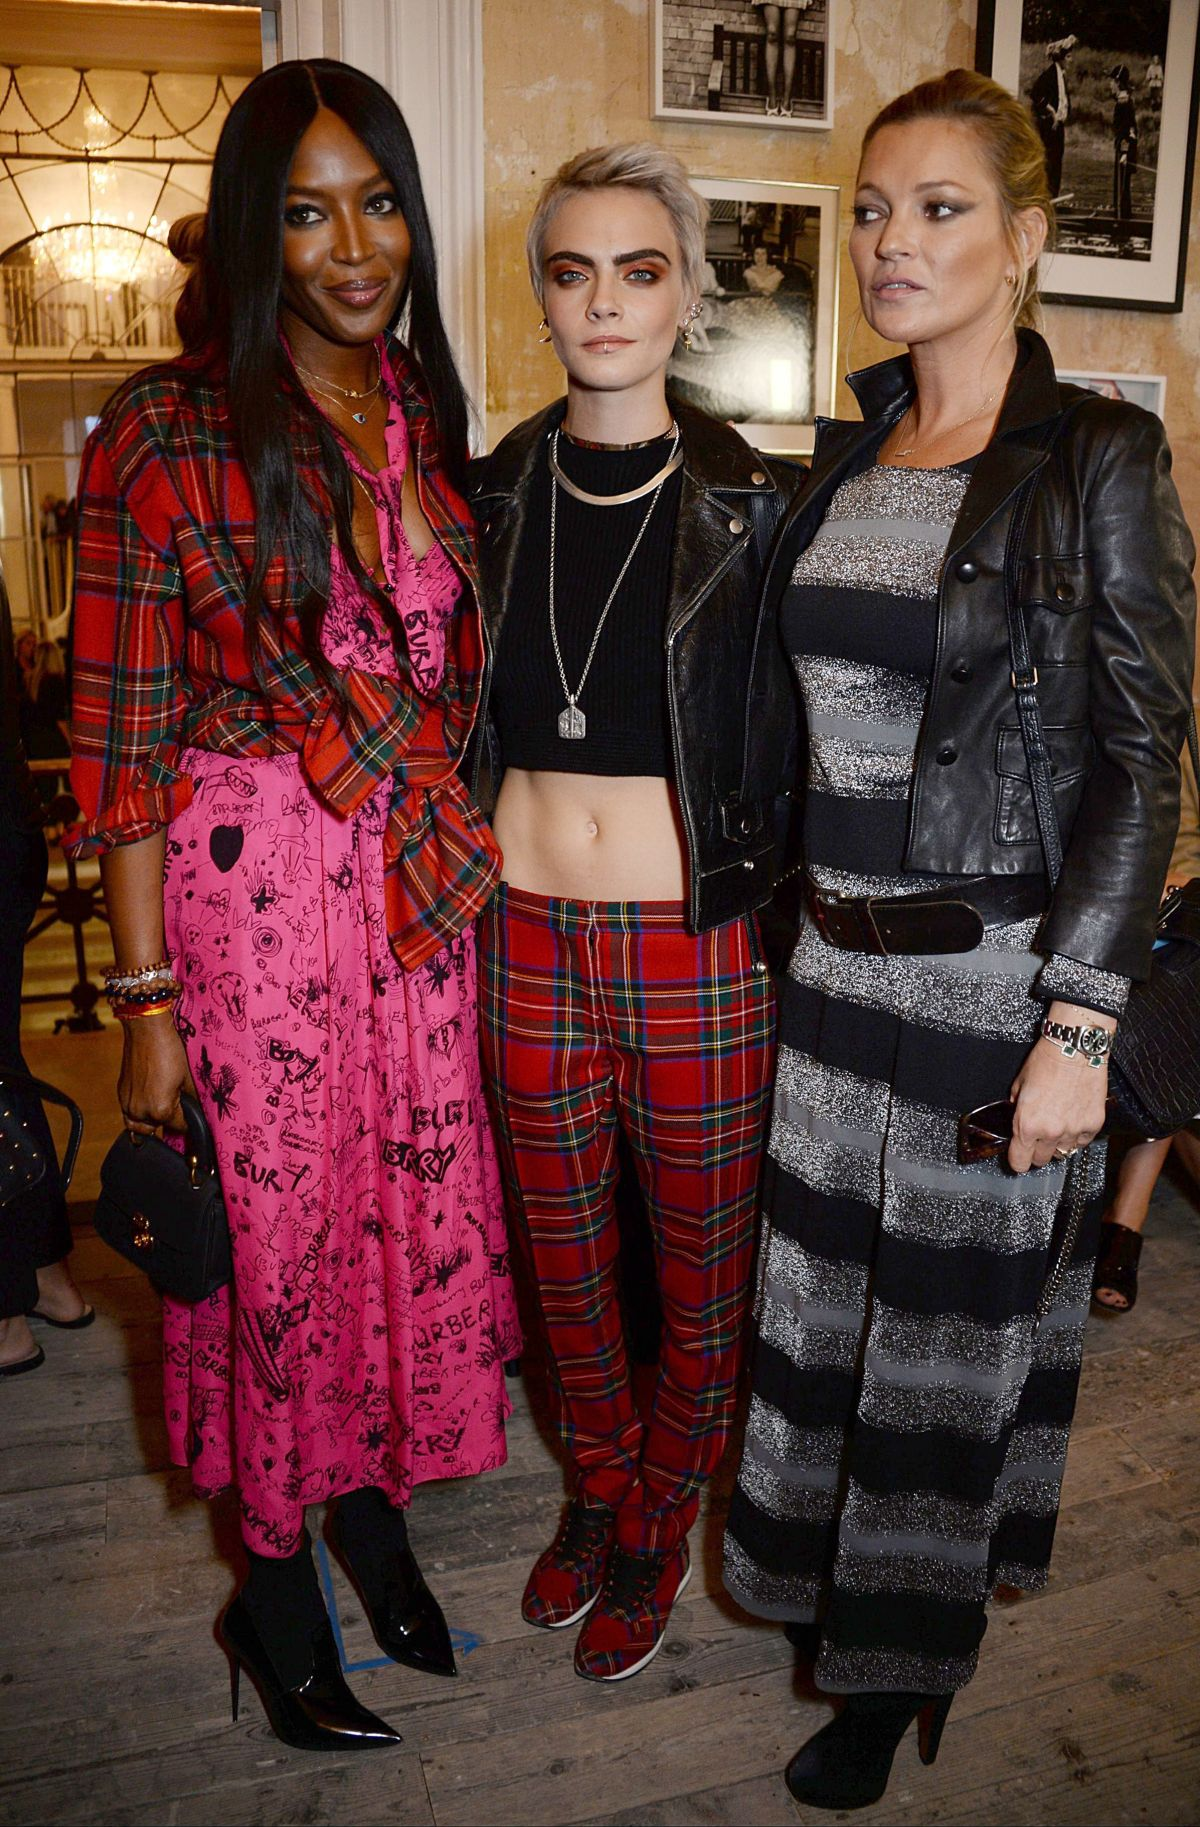 Cara delevingne at burberry show front row spring summer 2018 london fashion week london uk - Burberry fashion show ...